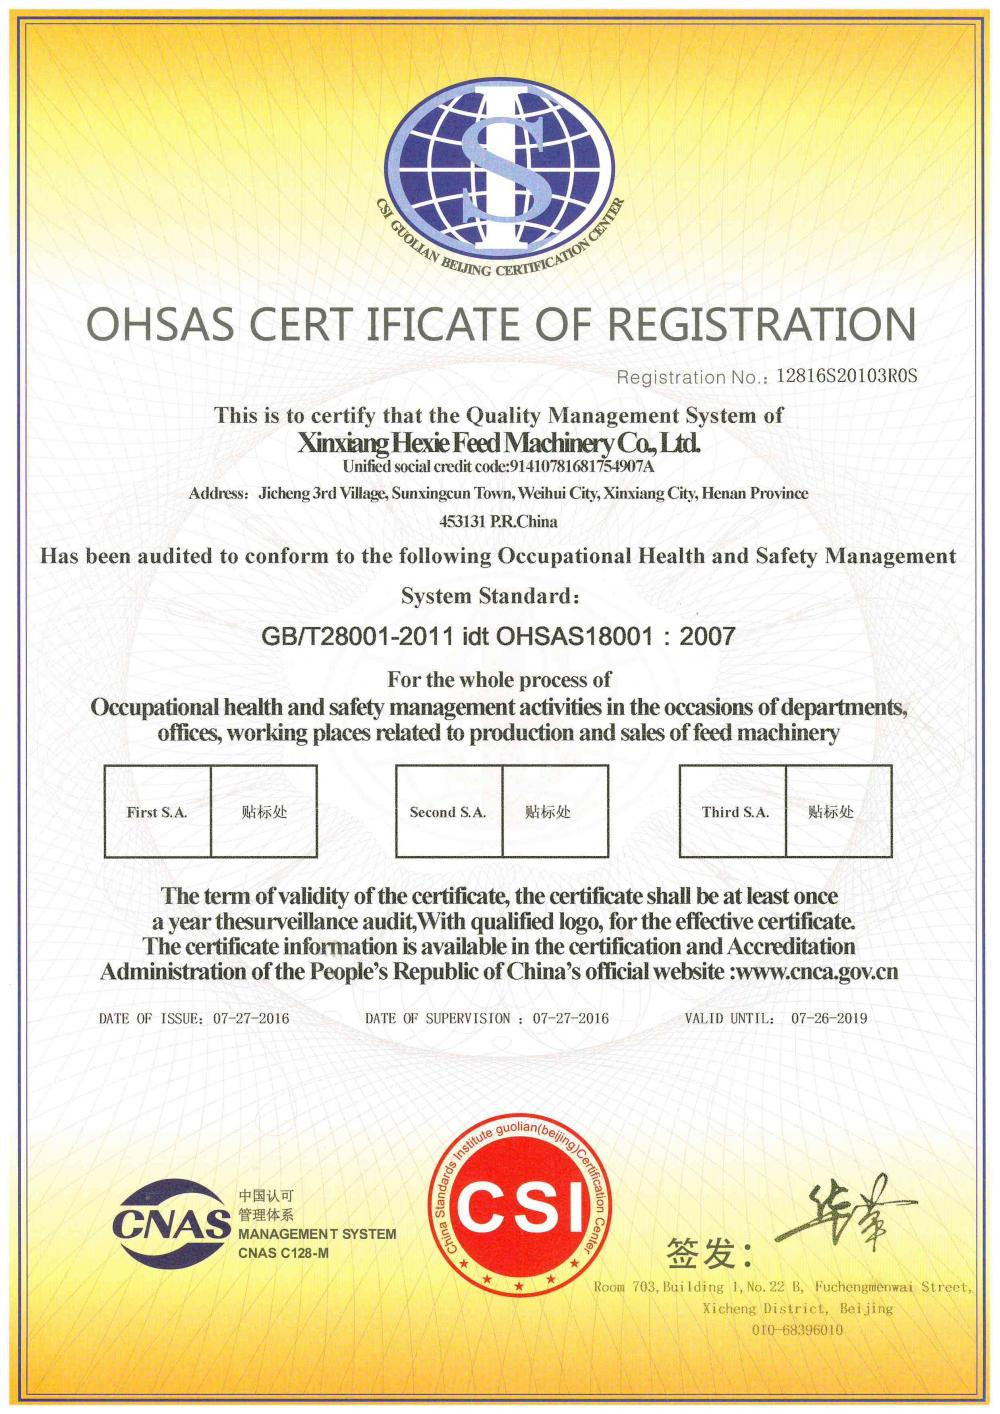 OHSAS CERT IFICATE OF REGISTRATION